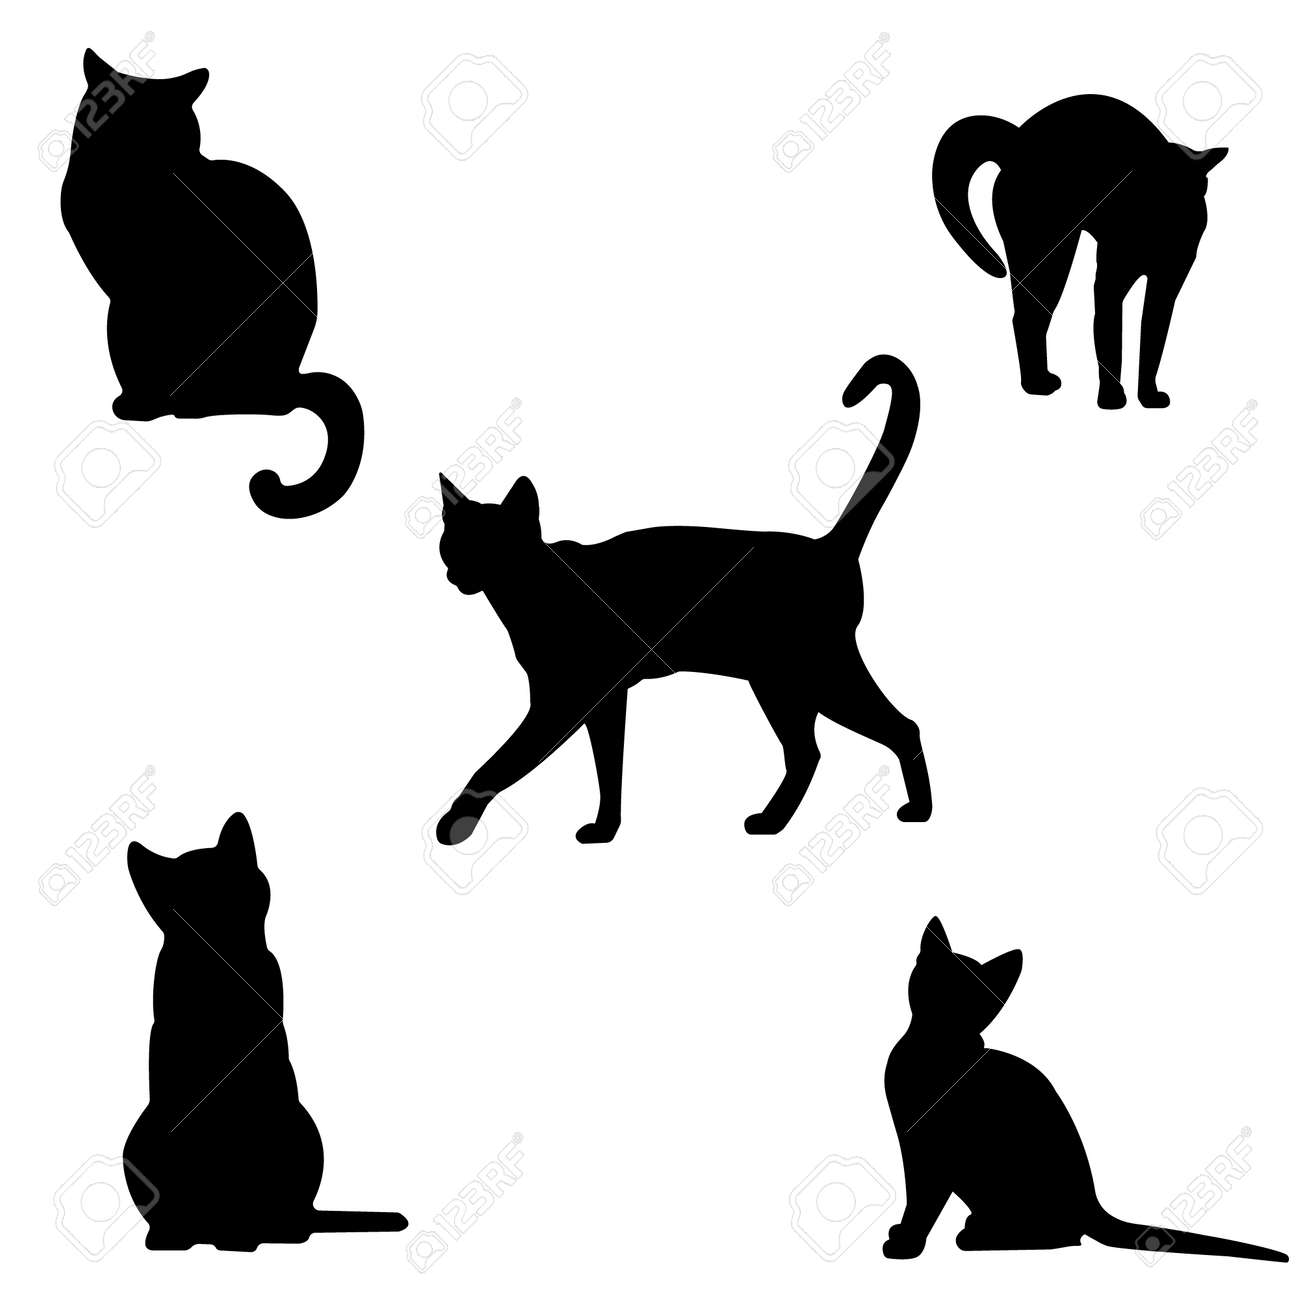 Set of cats silhouettes. Black contours of different cats on a white background. Isolated. Kittens . Vector illustration - 150582972